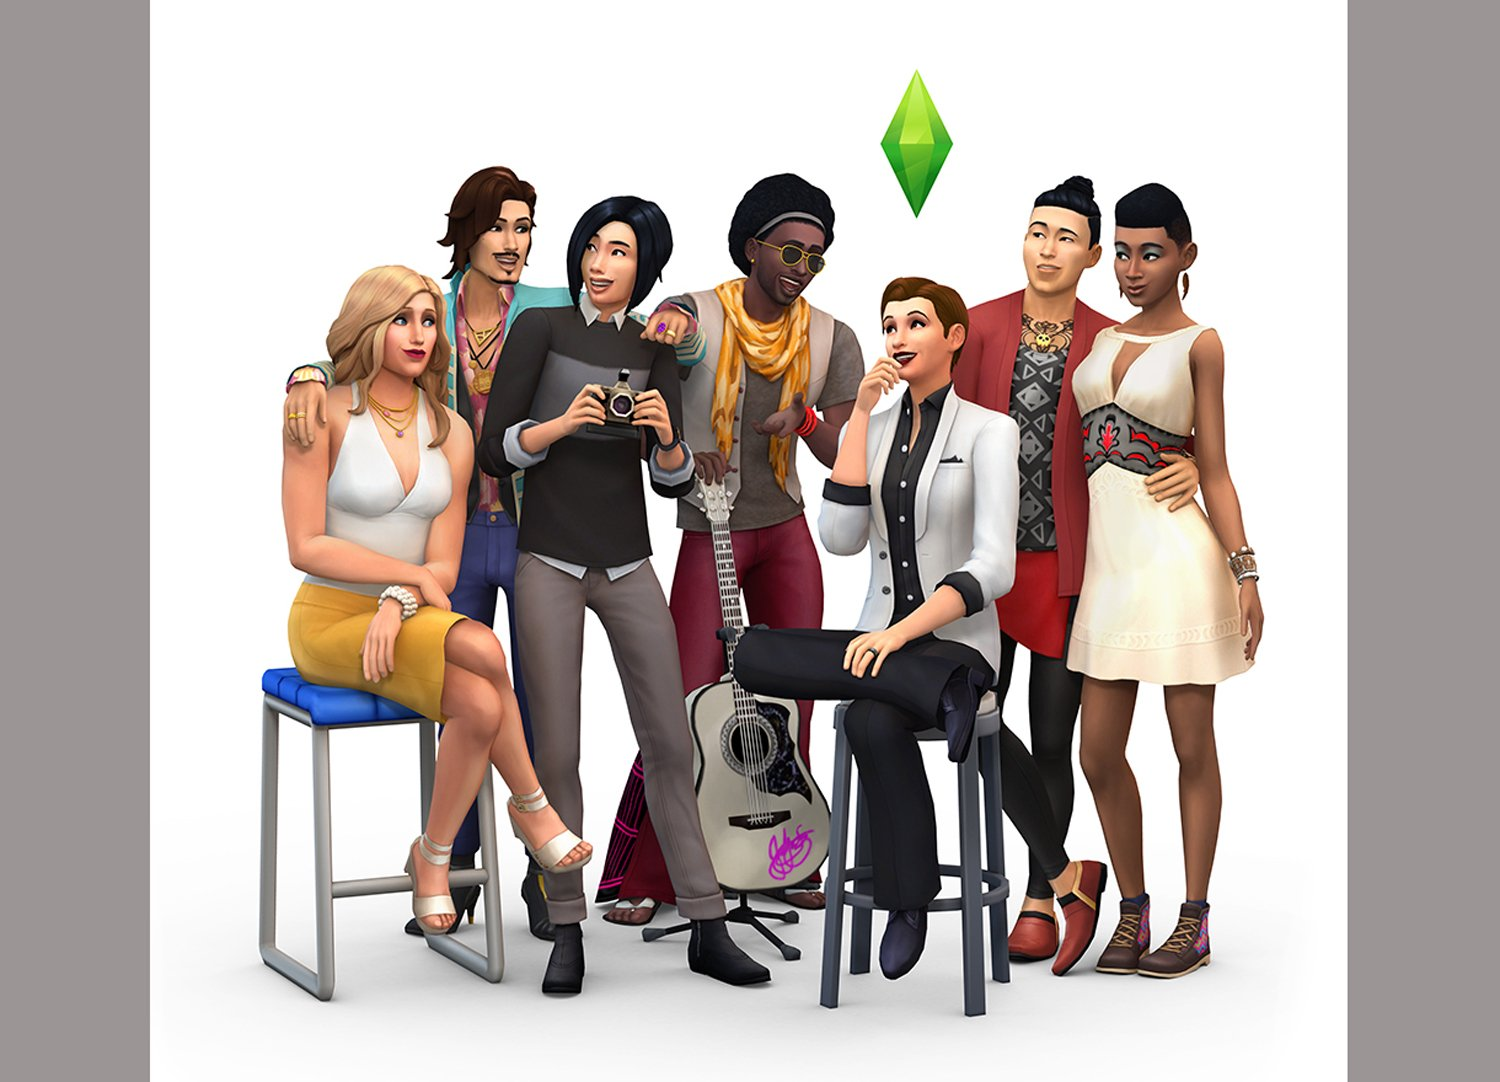 The Sims has removed all gender boundaries in its gameplay